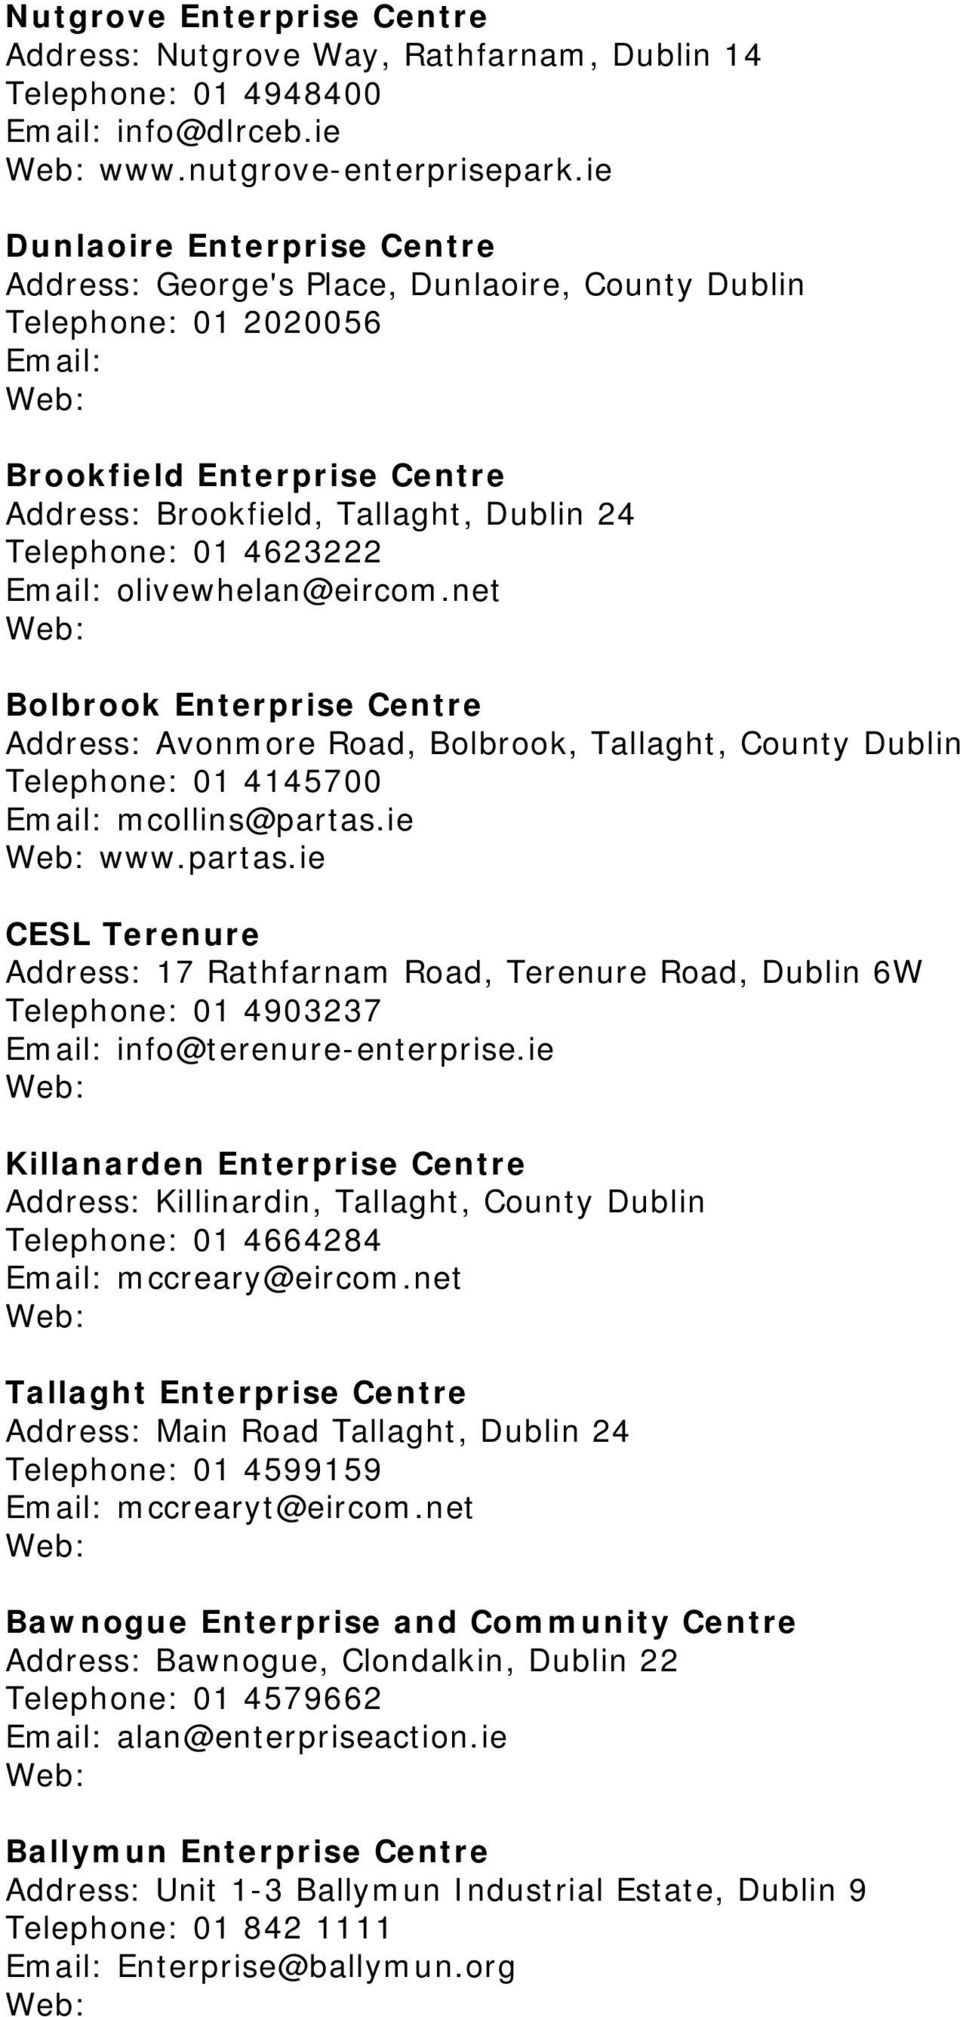 olivewhelan@eircom.net Bolbrook Enterprise Centre Address: Avonmore Road, Bolbrook, Tallaght, County Dublin Telephone: 01 4145700 mcollins@partas.